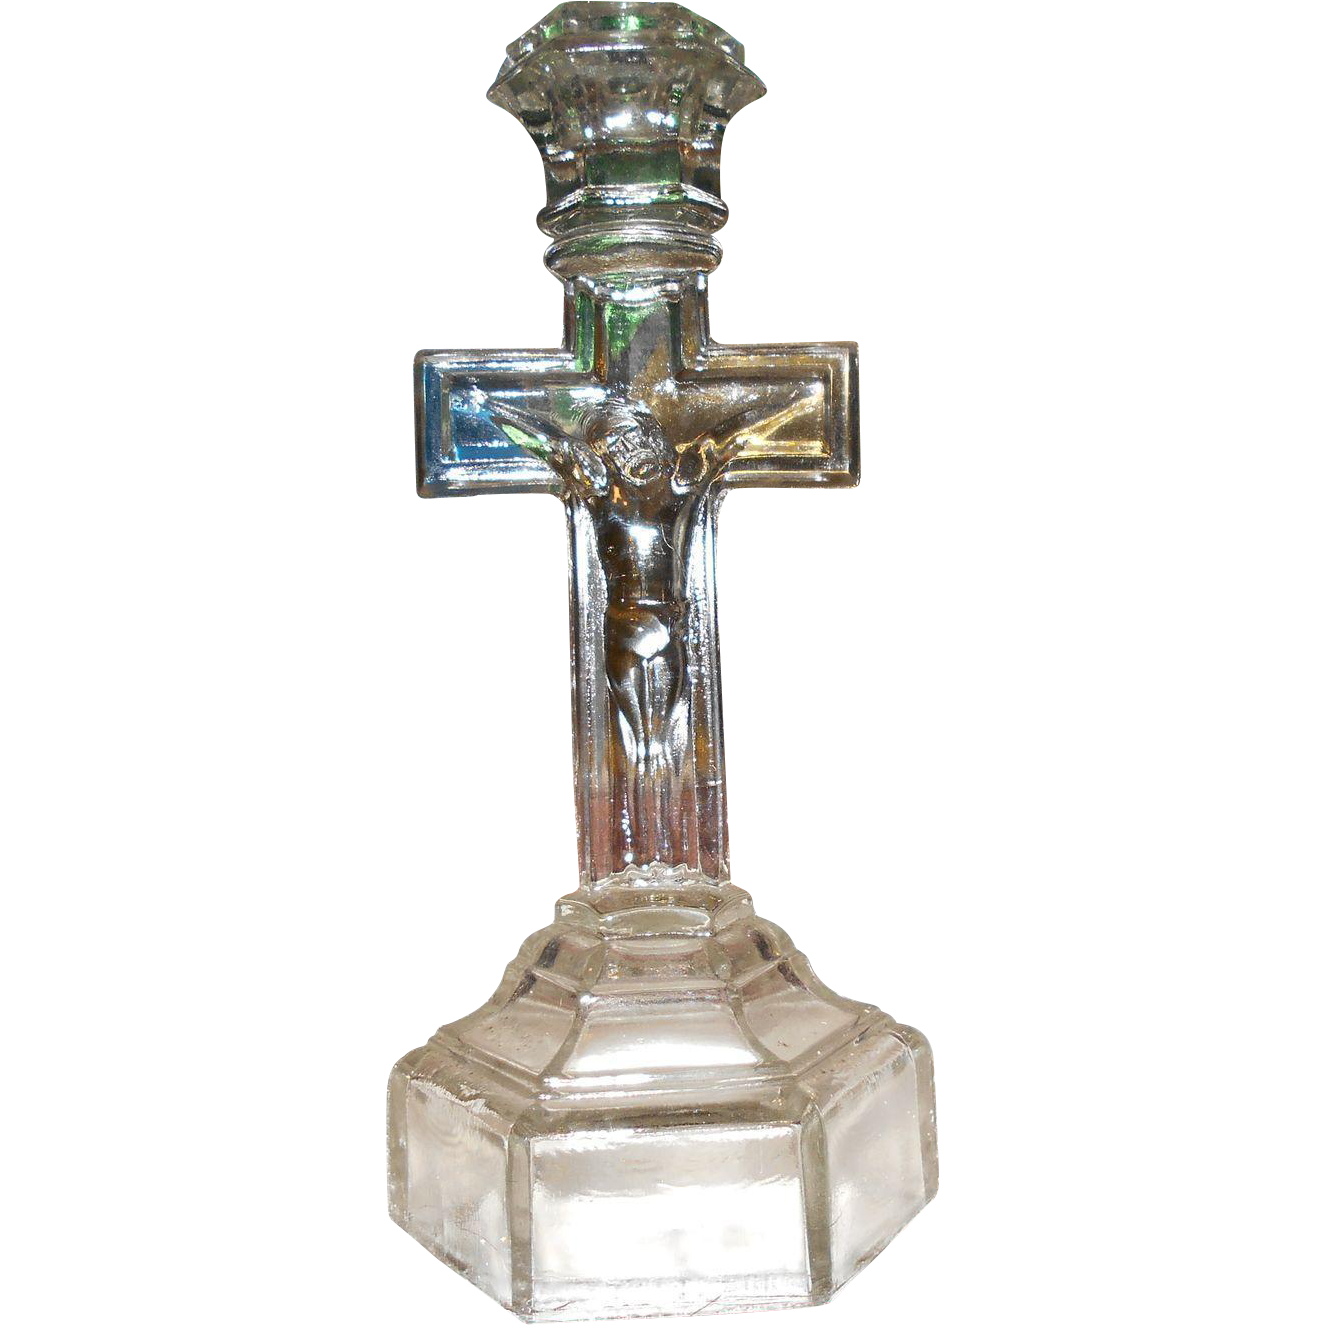 L Furniture Warehouse Victoria Bc Of Vintage Crucifix Pressed Manganese Glass Candlestick